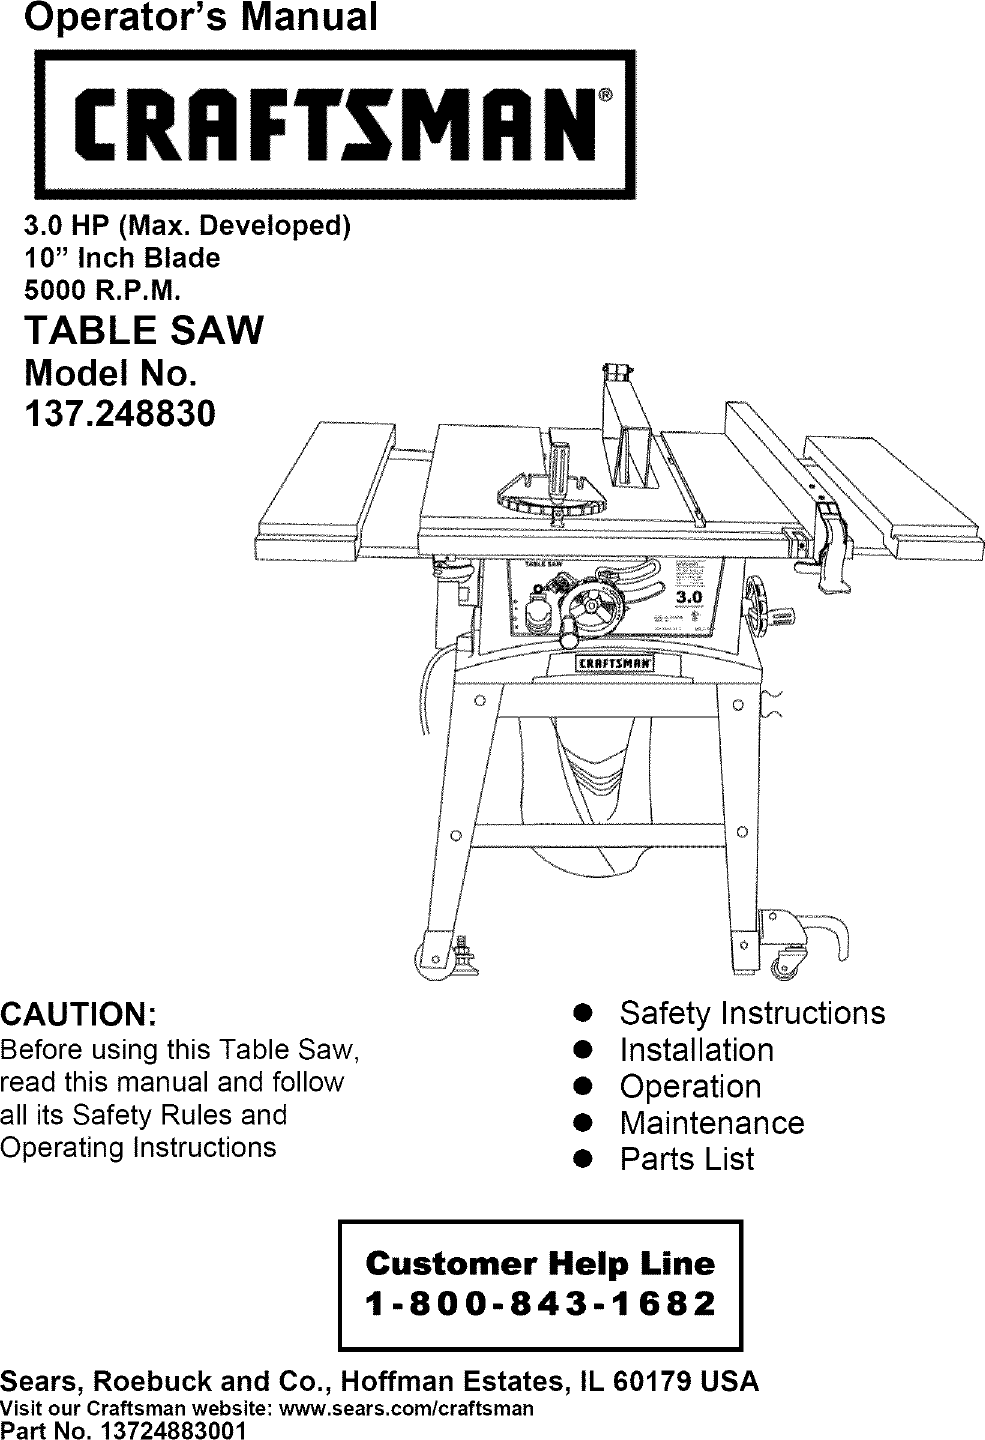 medium resolution of wiring diagram for craftsman table saw 137 248830